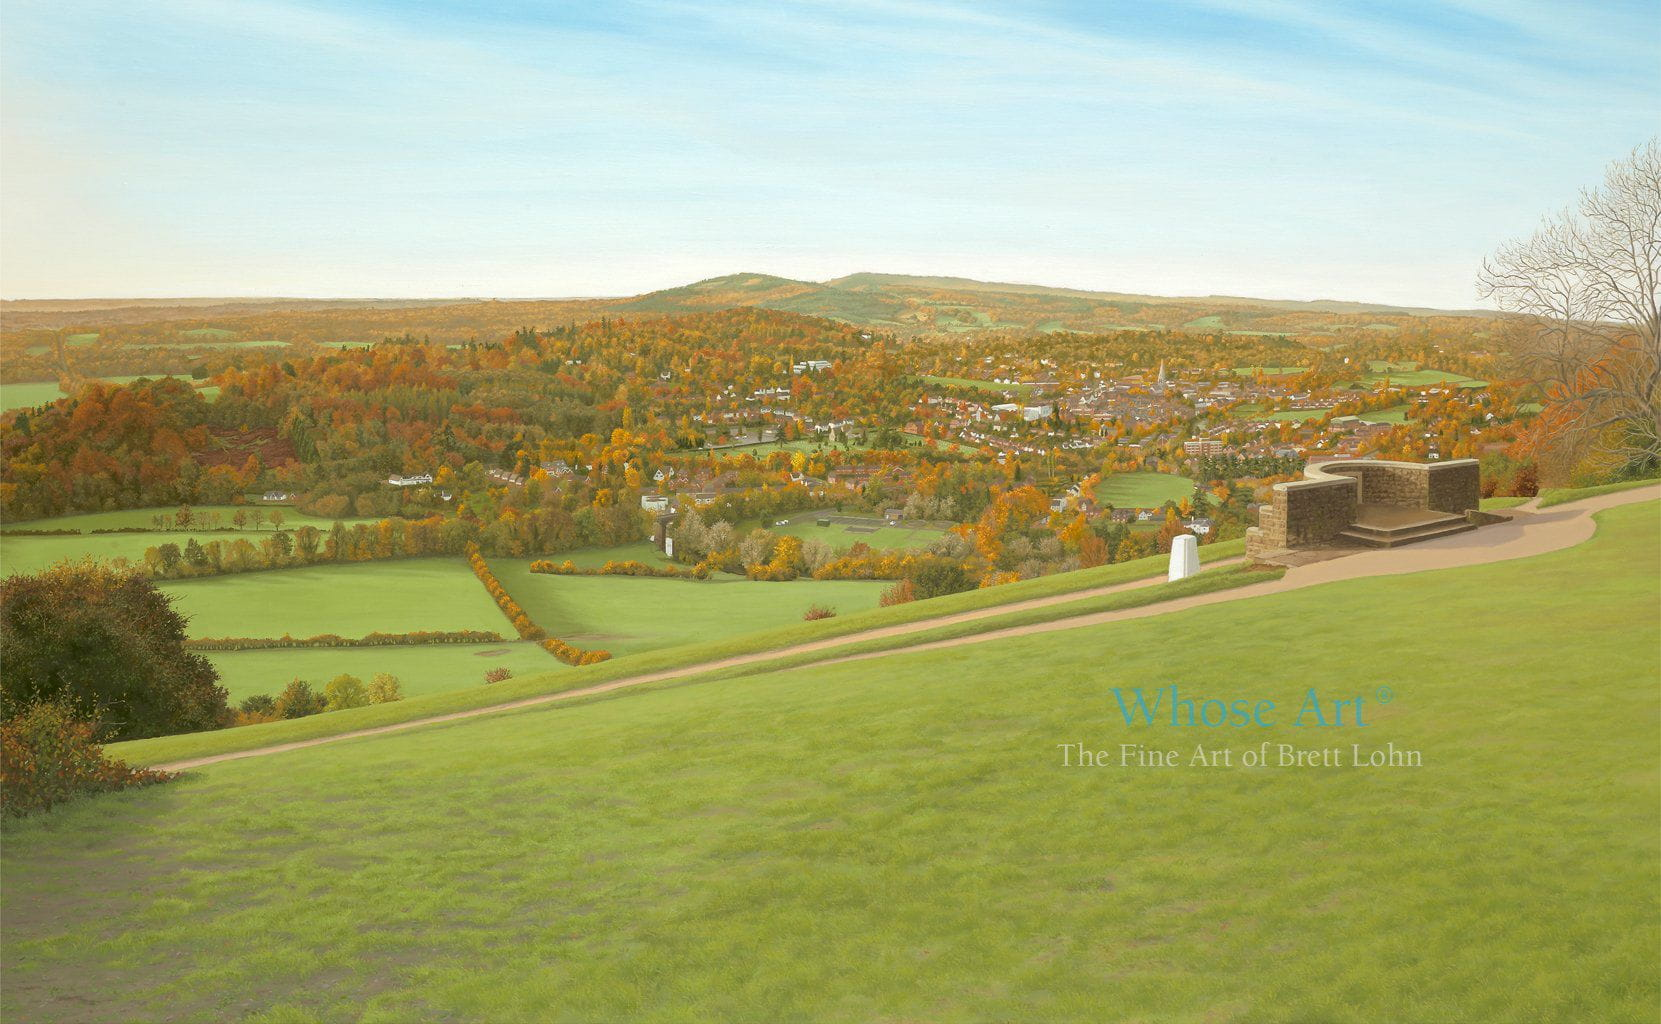 Landscape wall art print featuring a painting of the South Downs from the Box Hill viewpoint in the golden autumn light.